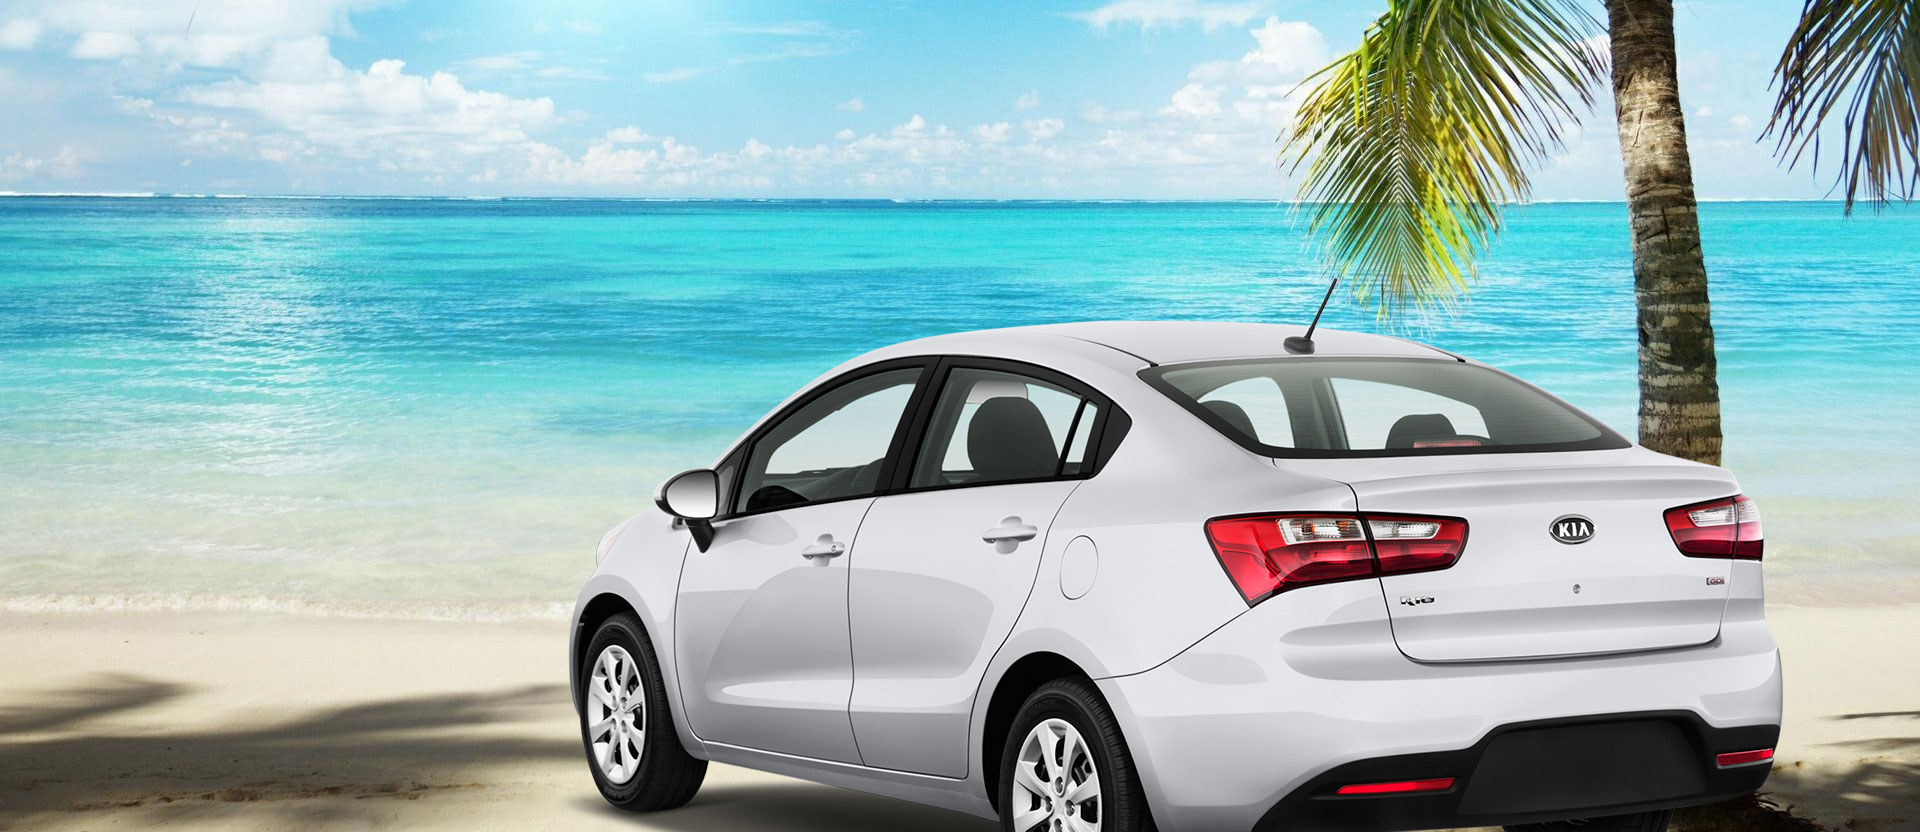 Car Rental Company in St. Lucia